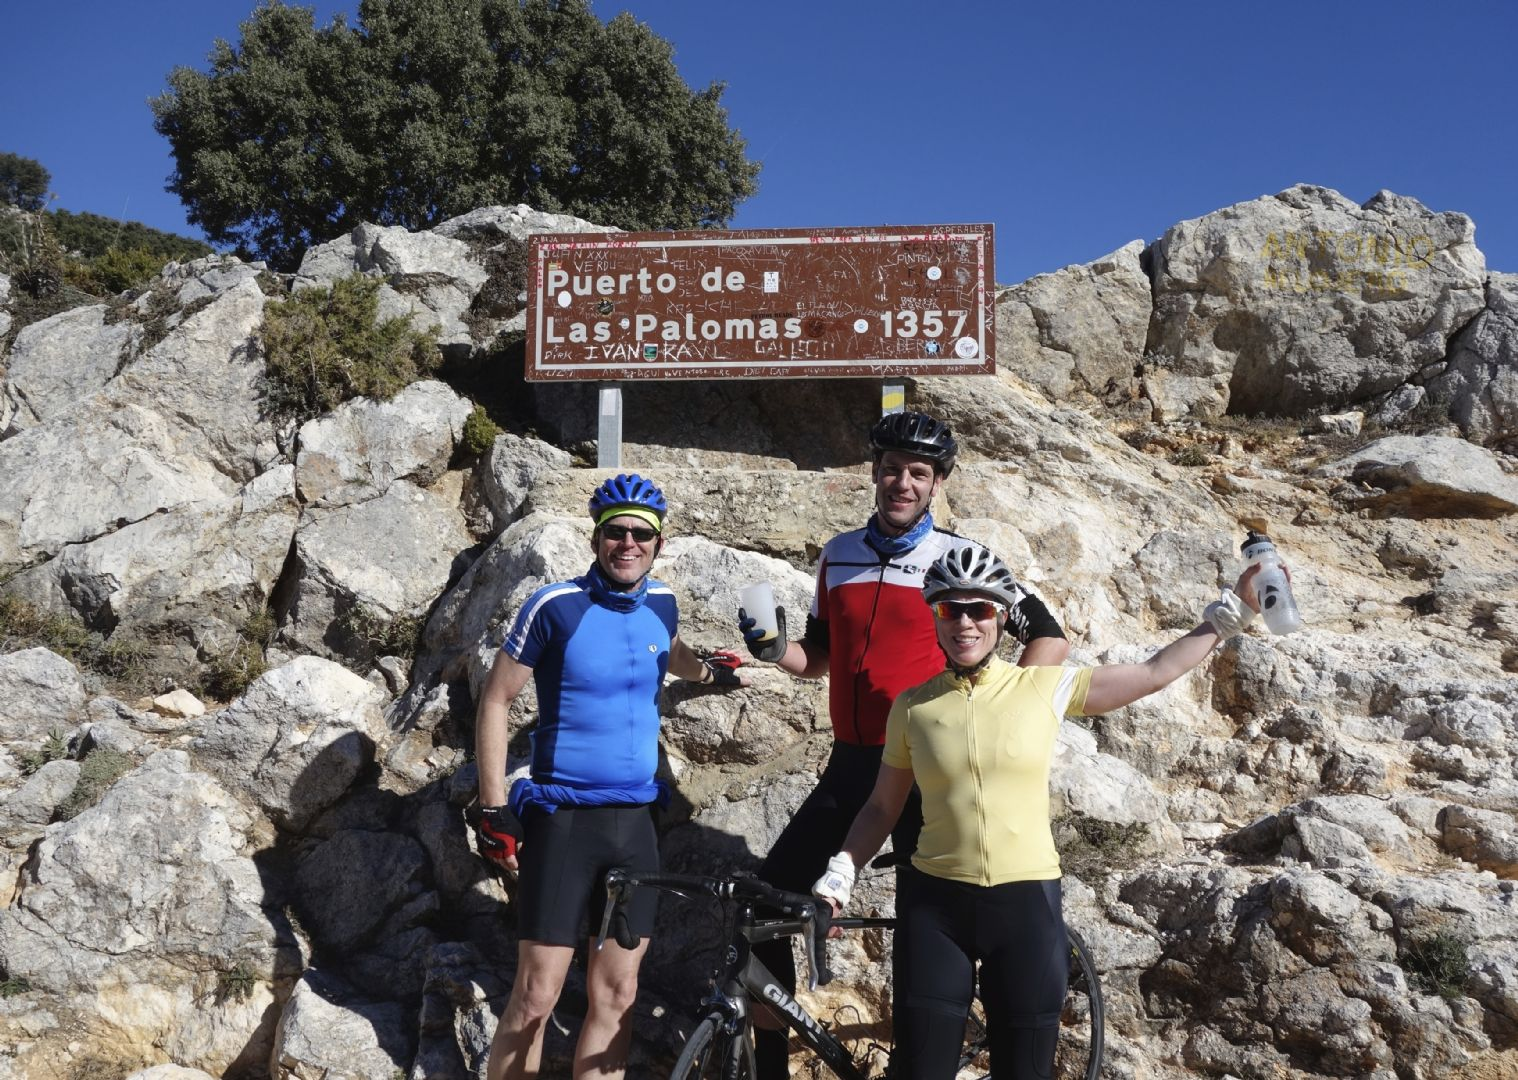 spainroadcyclingronda34.jpg - Southern Spain - Roads of Ronda - Road Cycling